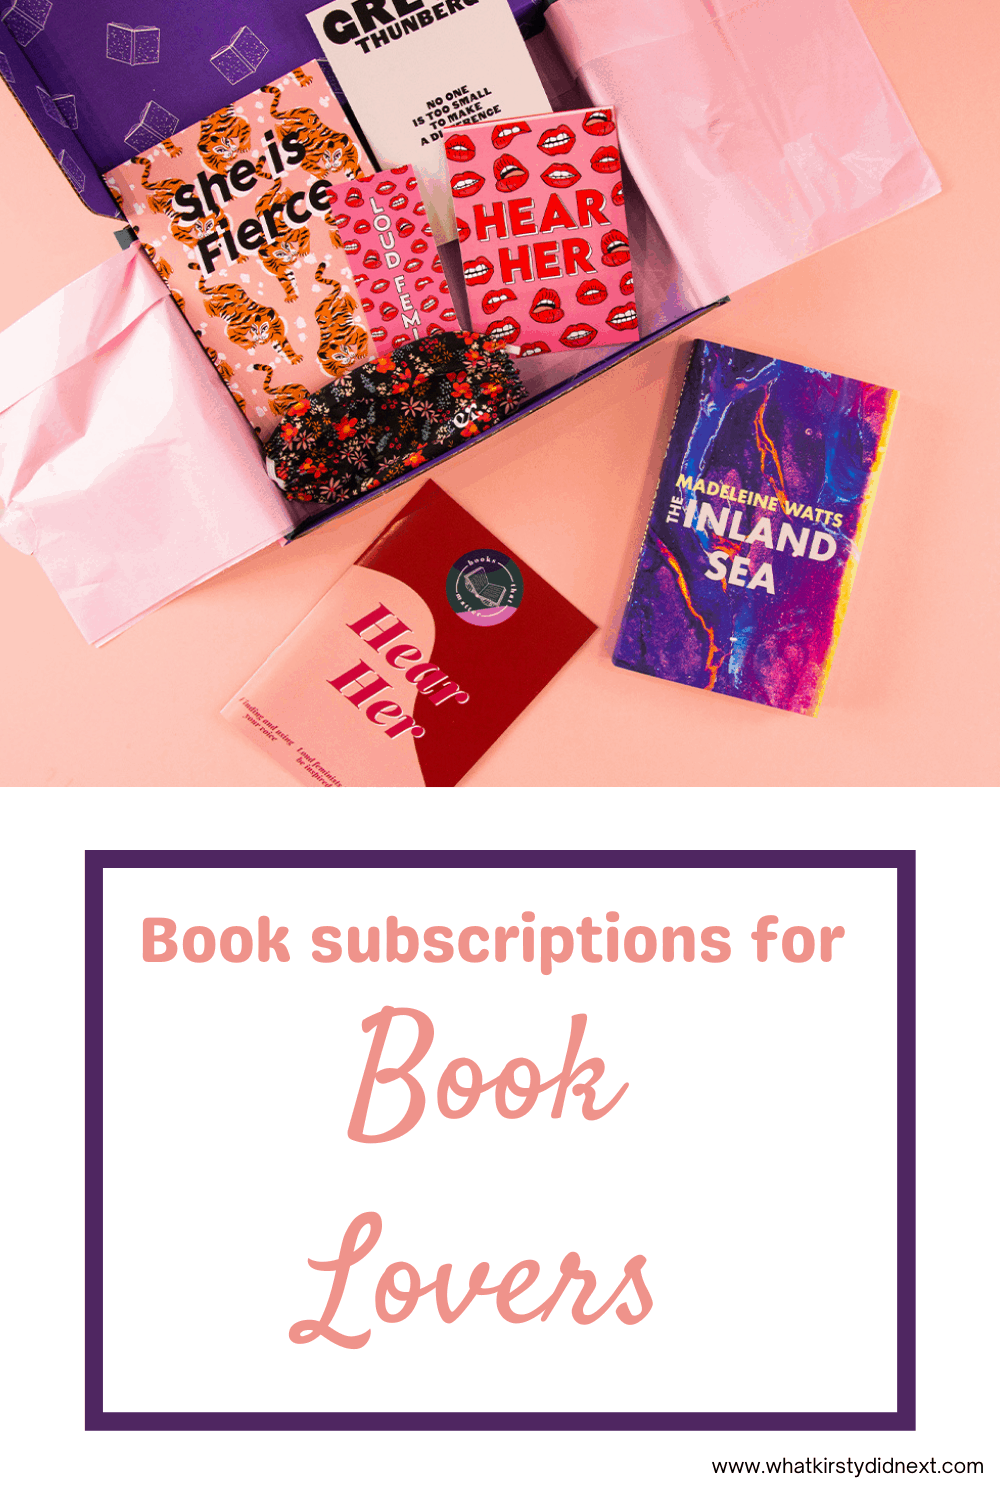 Book subscriptions for book lovers